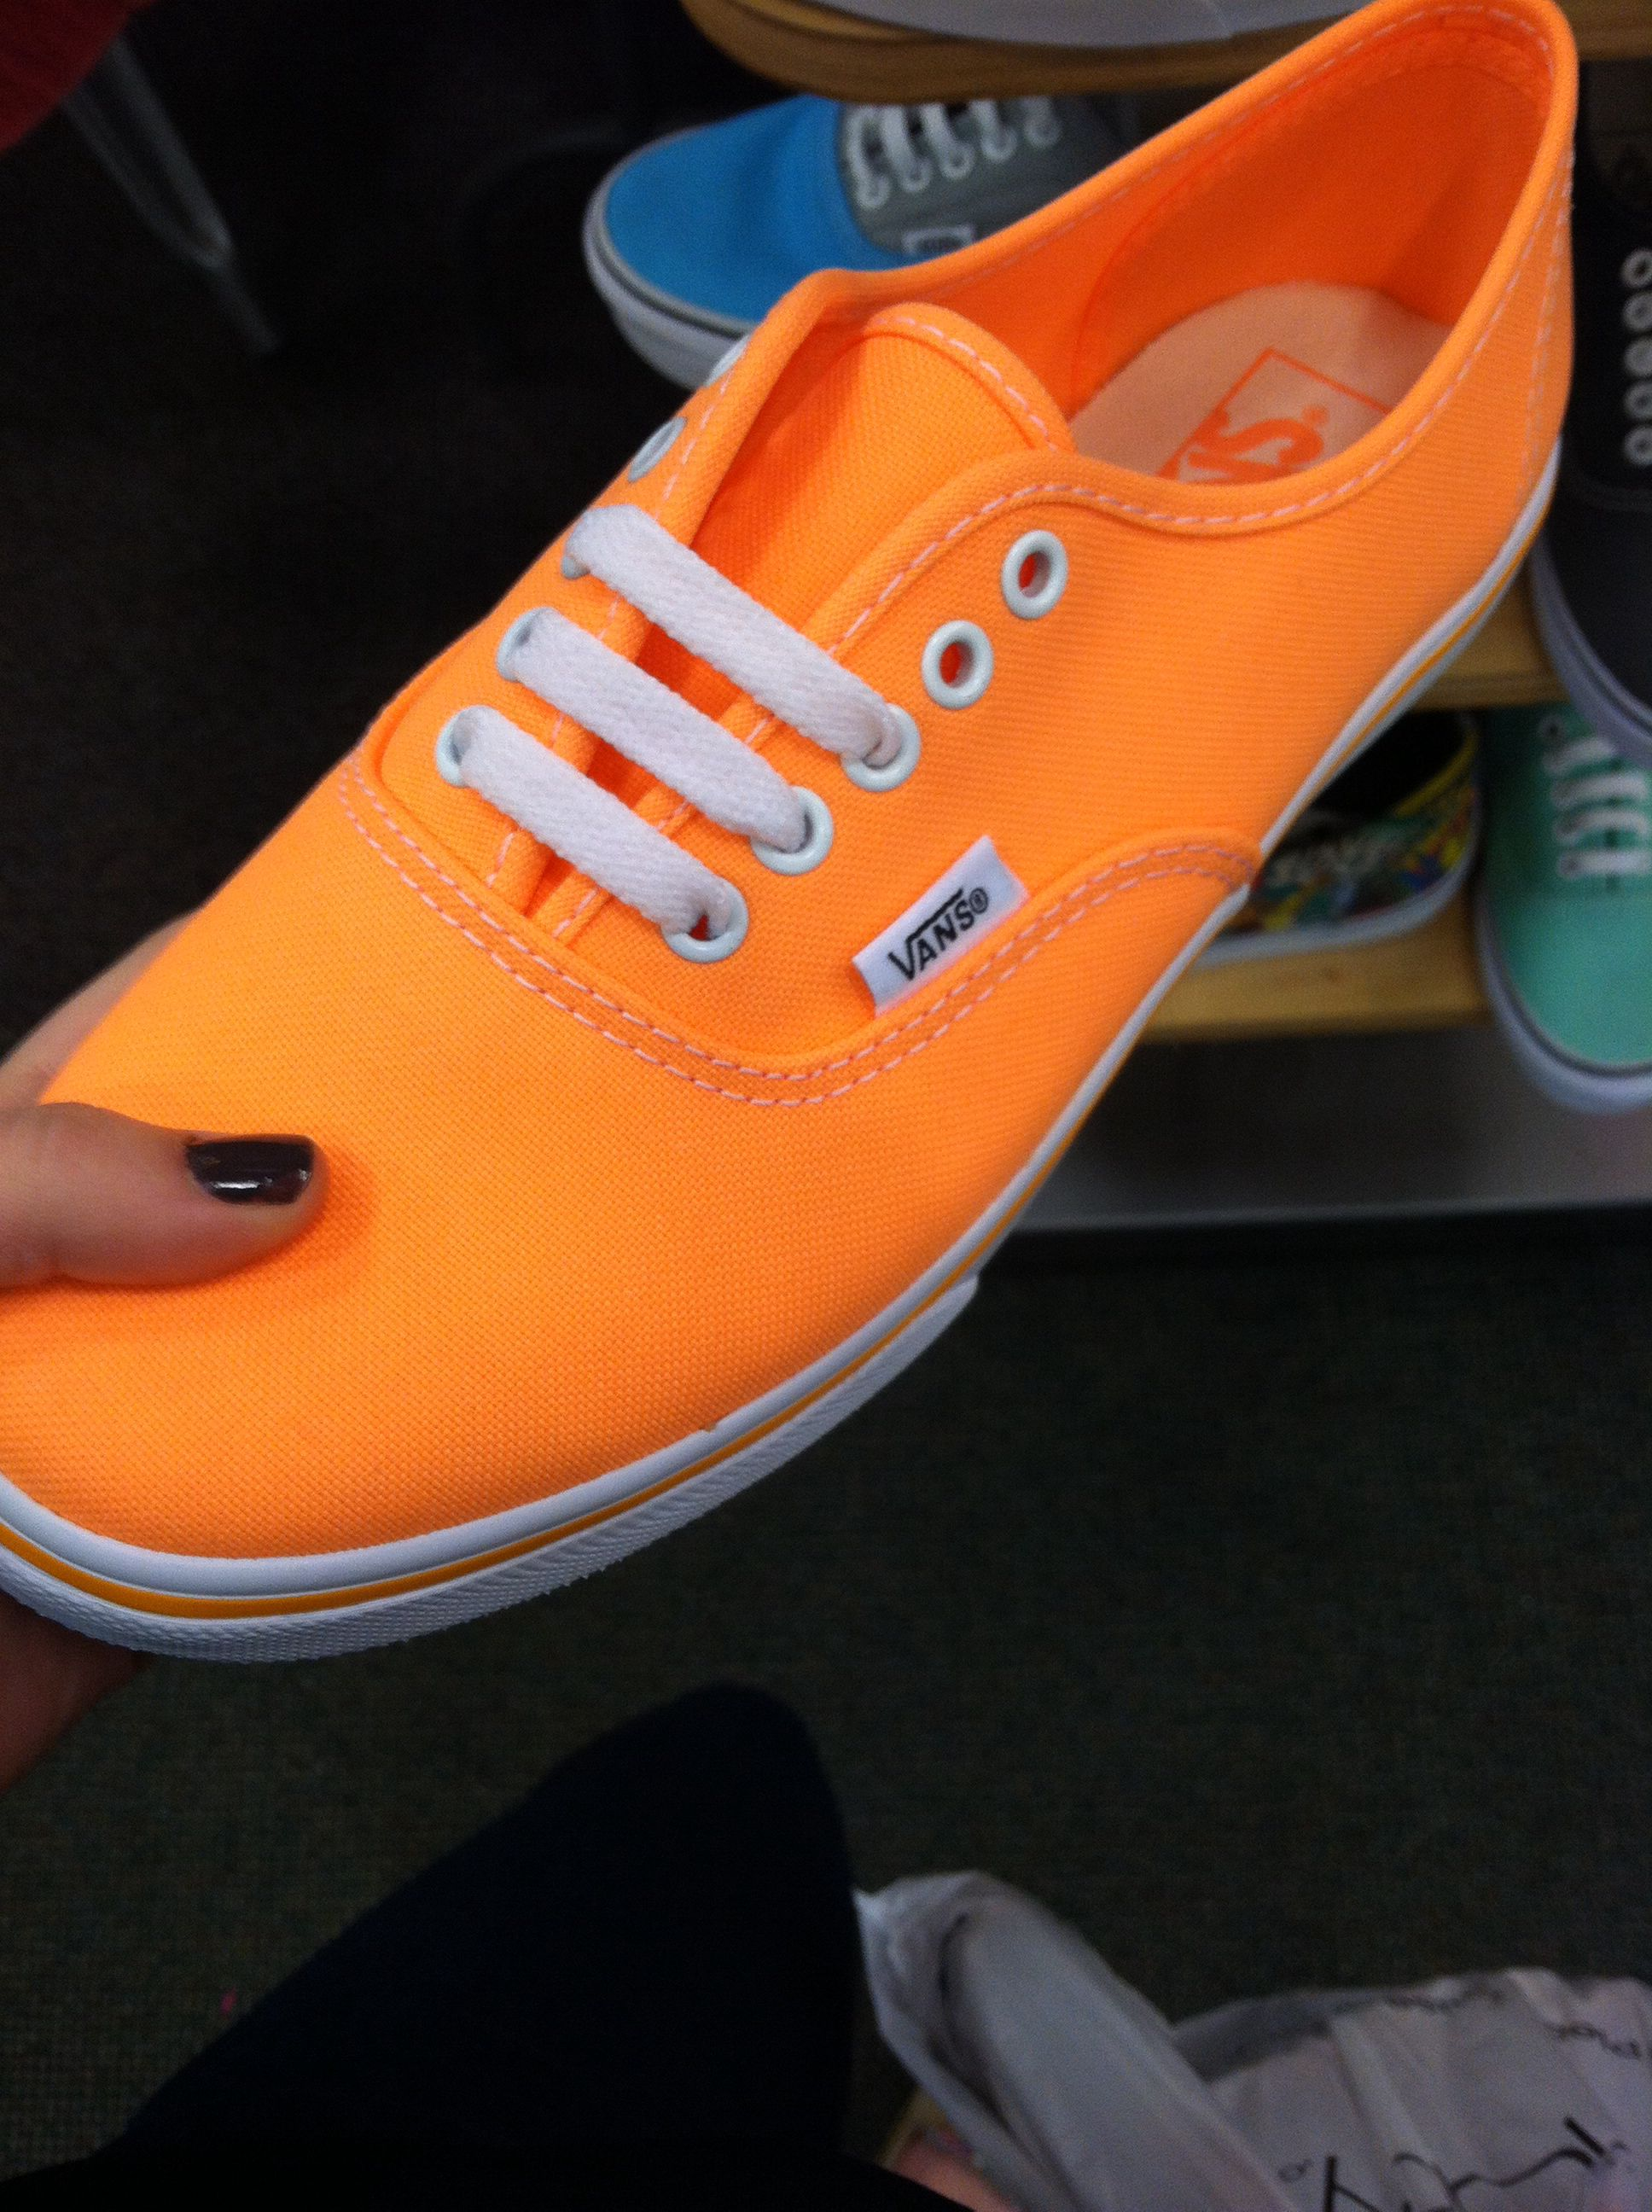 Neon orange Vans | Shoes | Vans shoes, Shoes, Crazy shoes